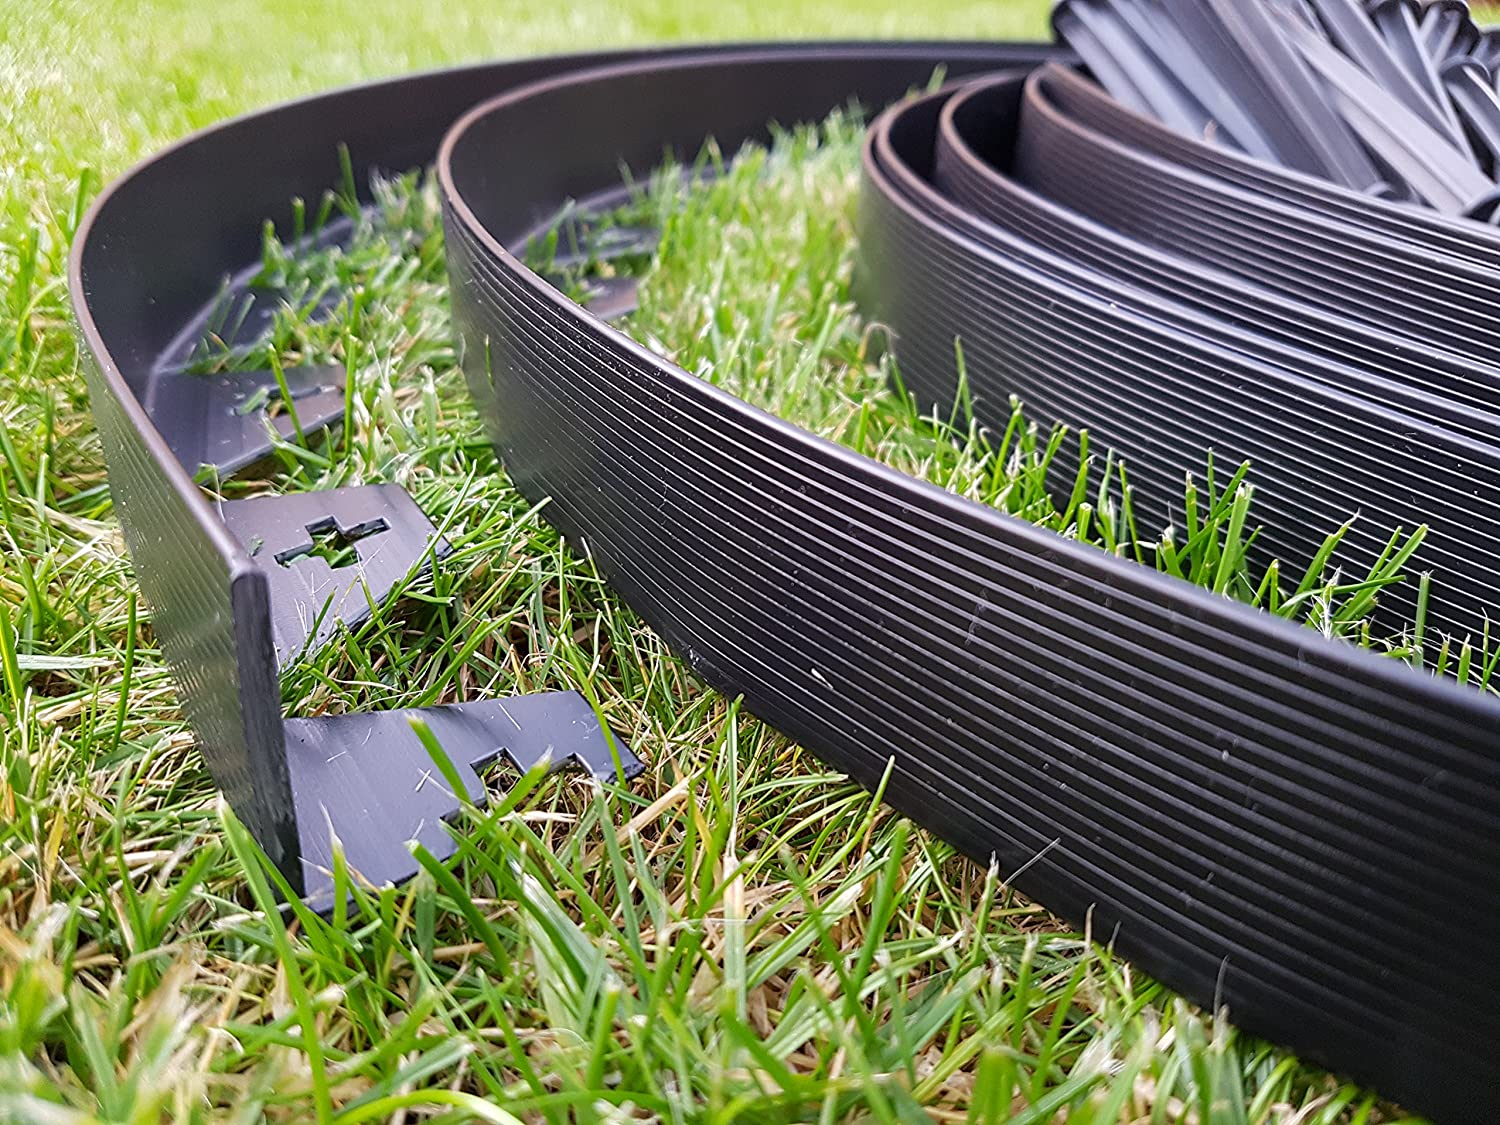 10 metres of BLACK Flexible Plastic GARDEN EDGING with 50 STRONG Securing Pegs / Anchors, Lawn Borders, Flexible Lawn Edging, Plastic Grass Edging, Garden Ideas, Garden Design ERPROF